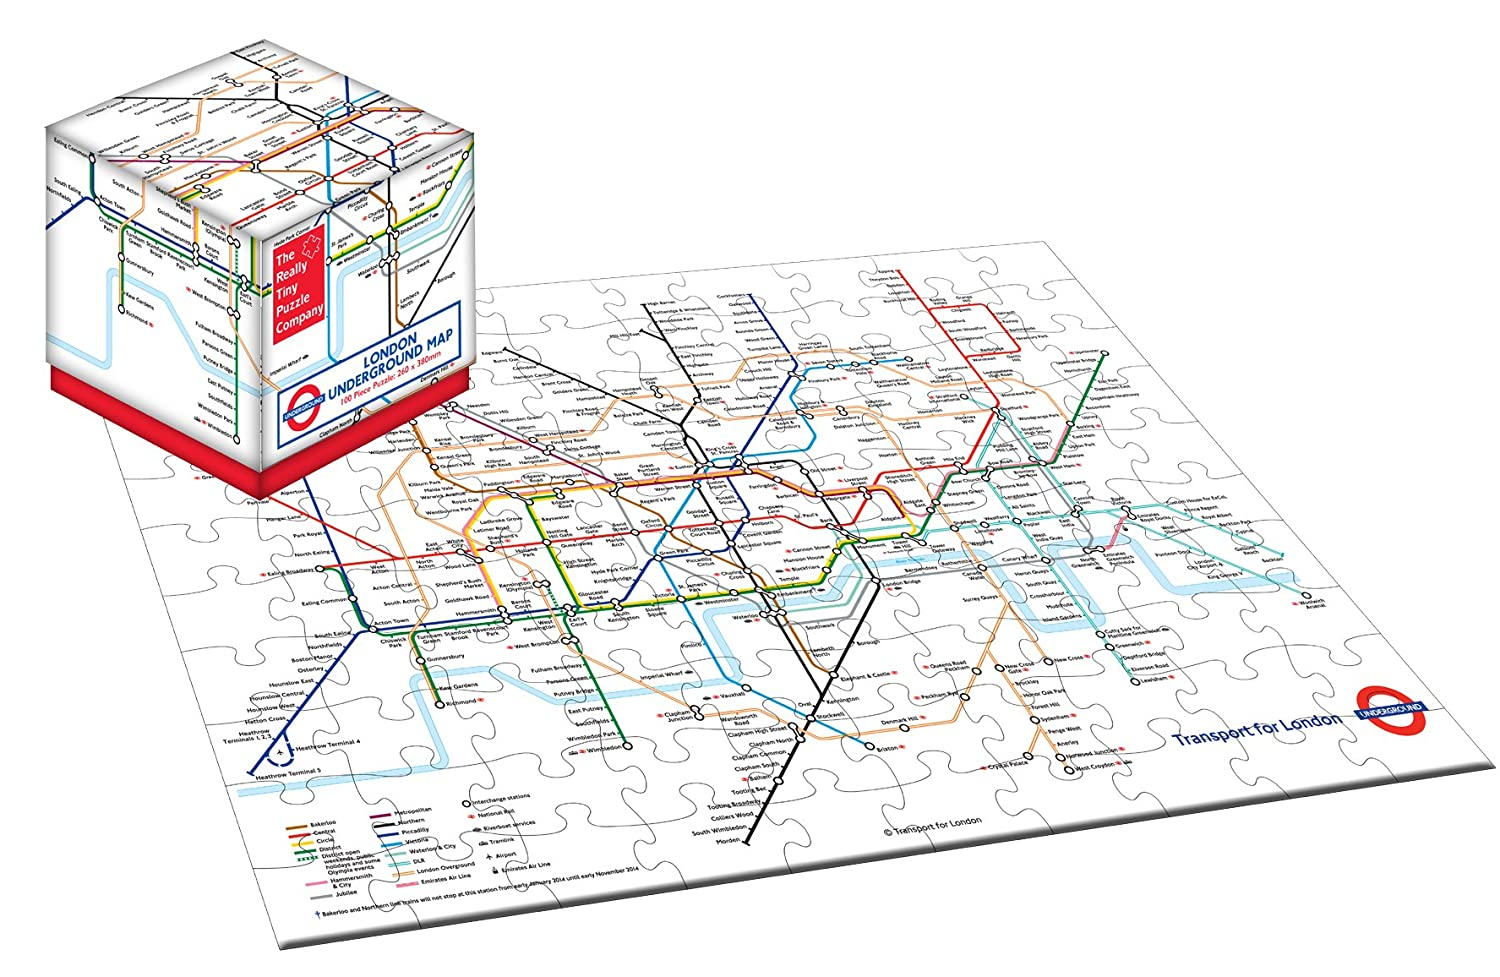 Robert Frederick London Underground Cube puzzle, colori assortiti, pezzi RFS11355